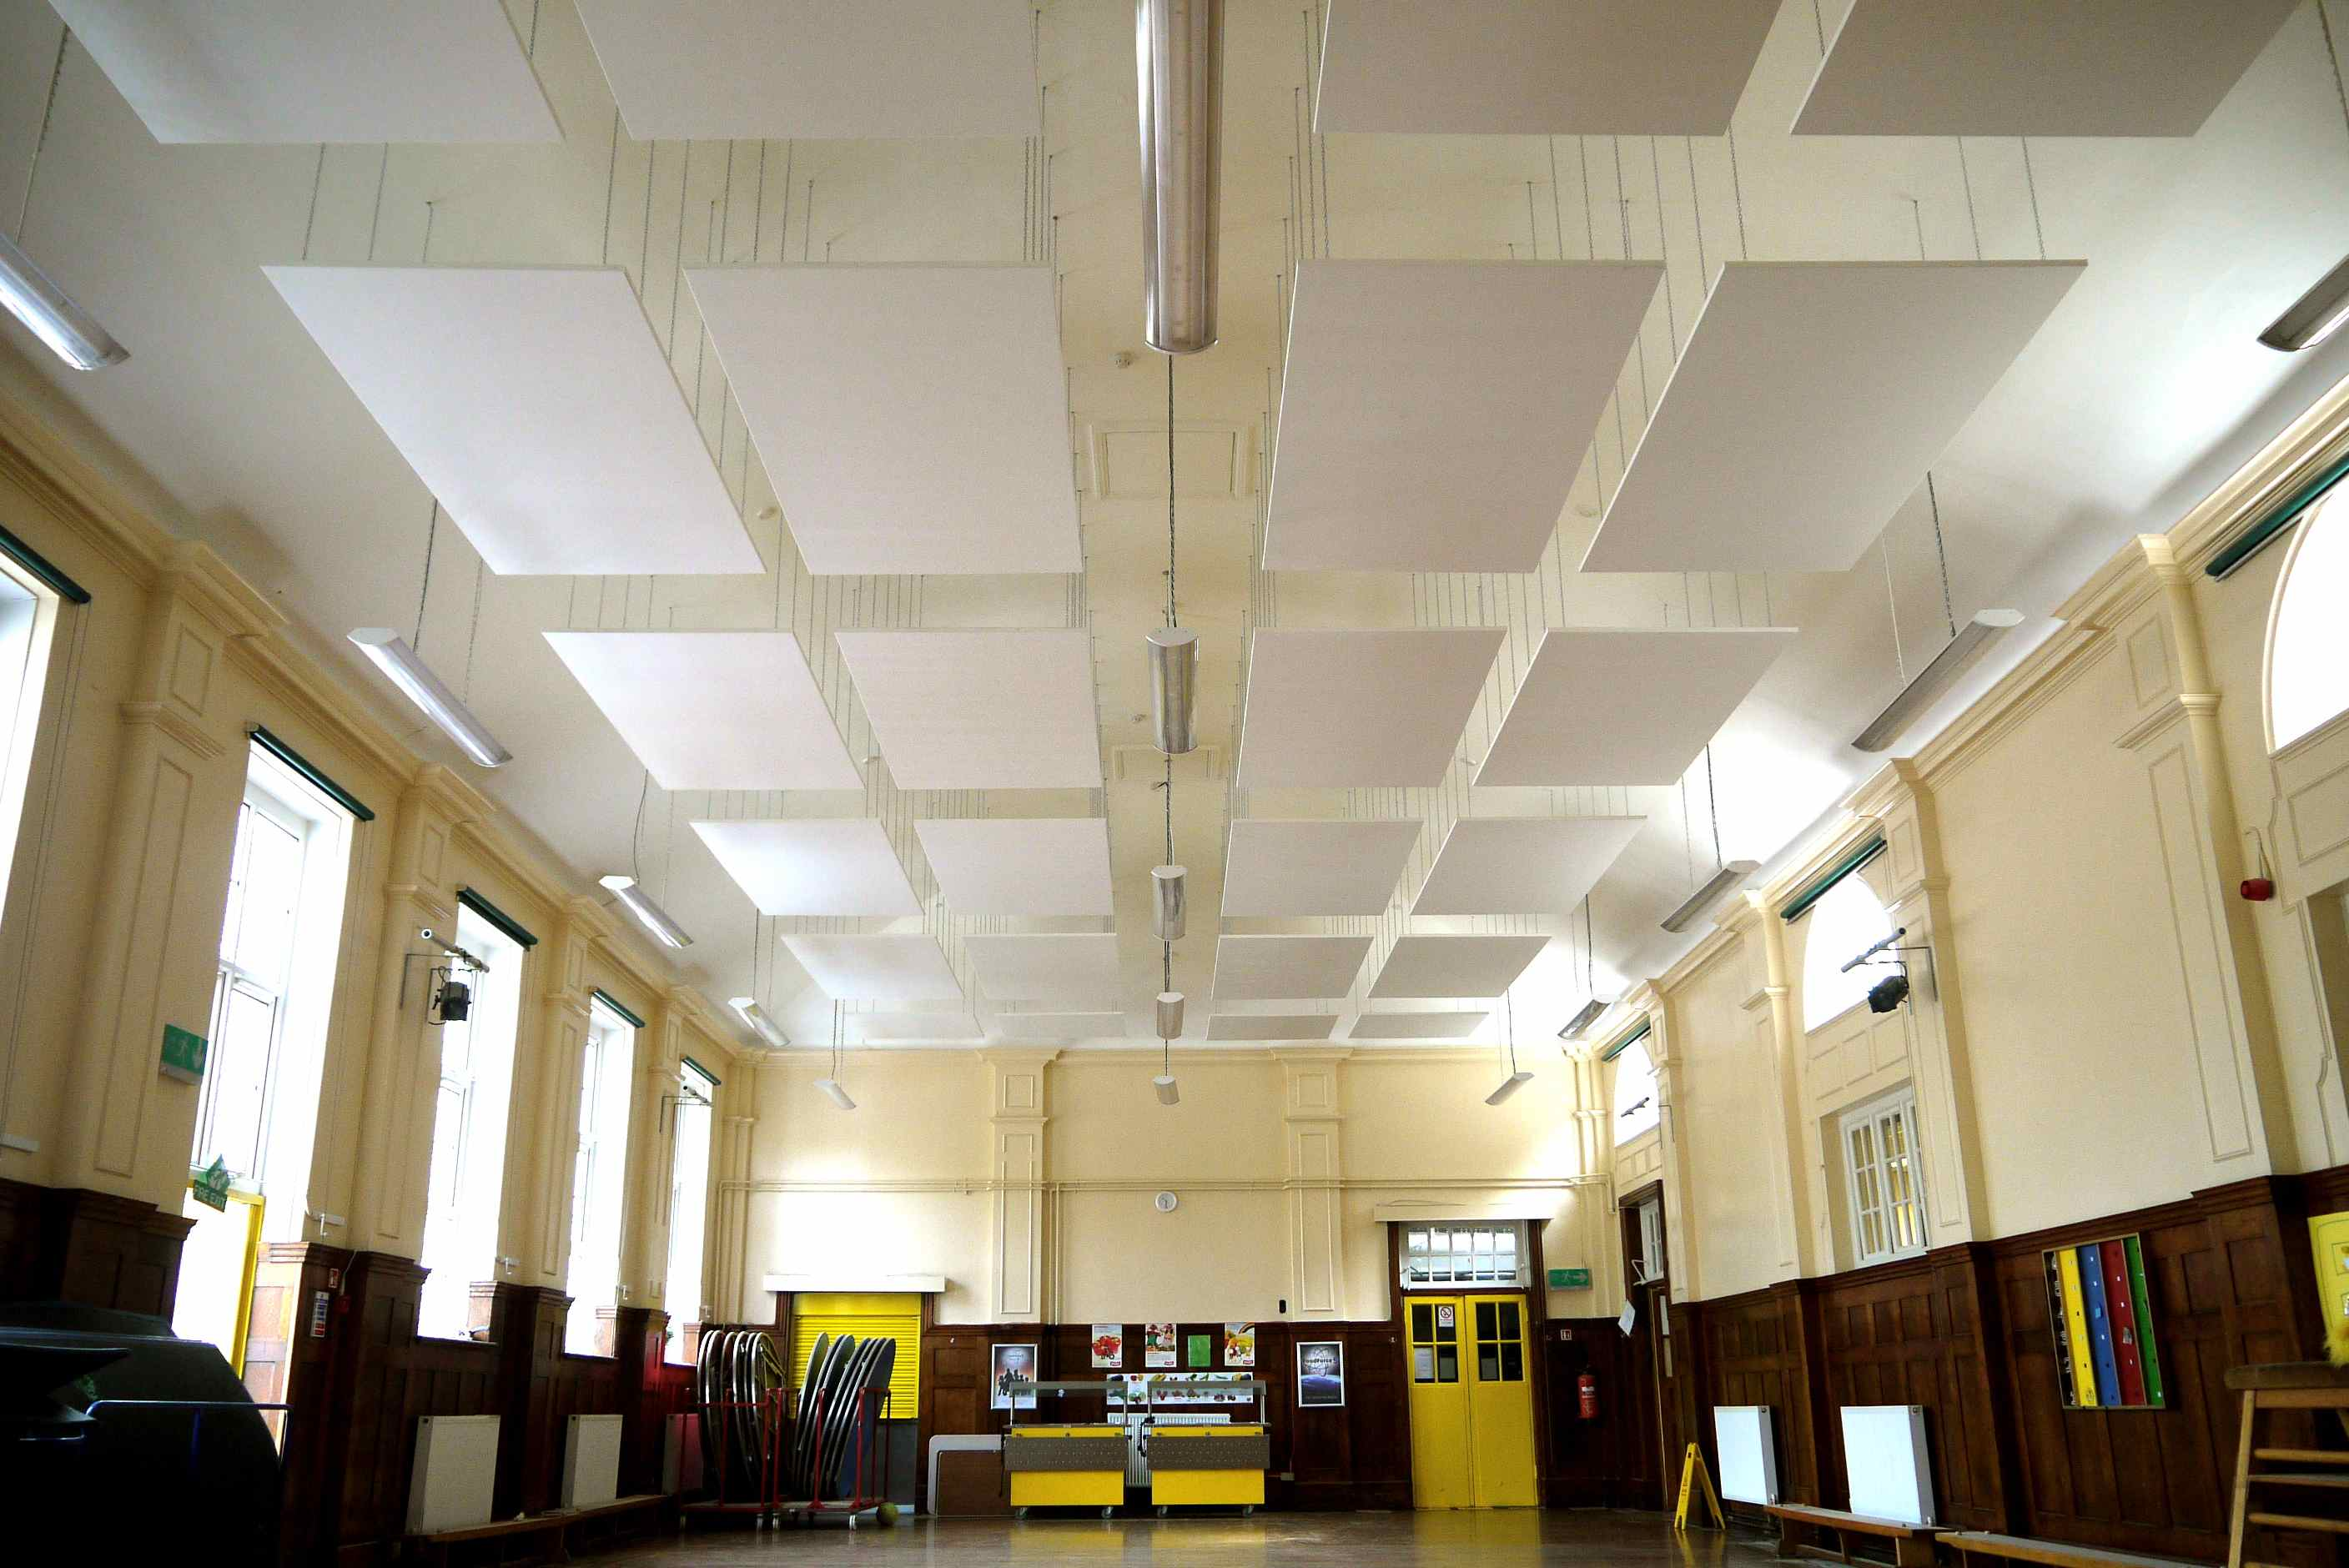 Acoustics In School Hall Reduce Reverberation Times